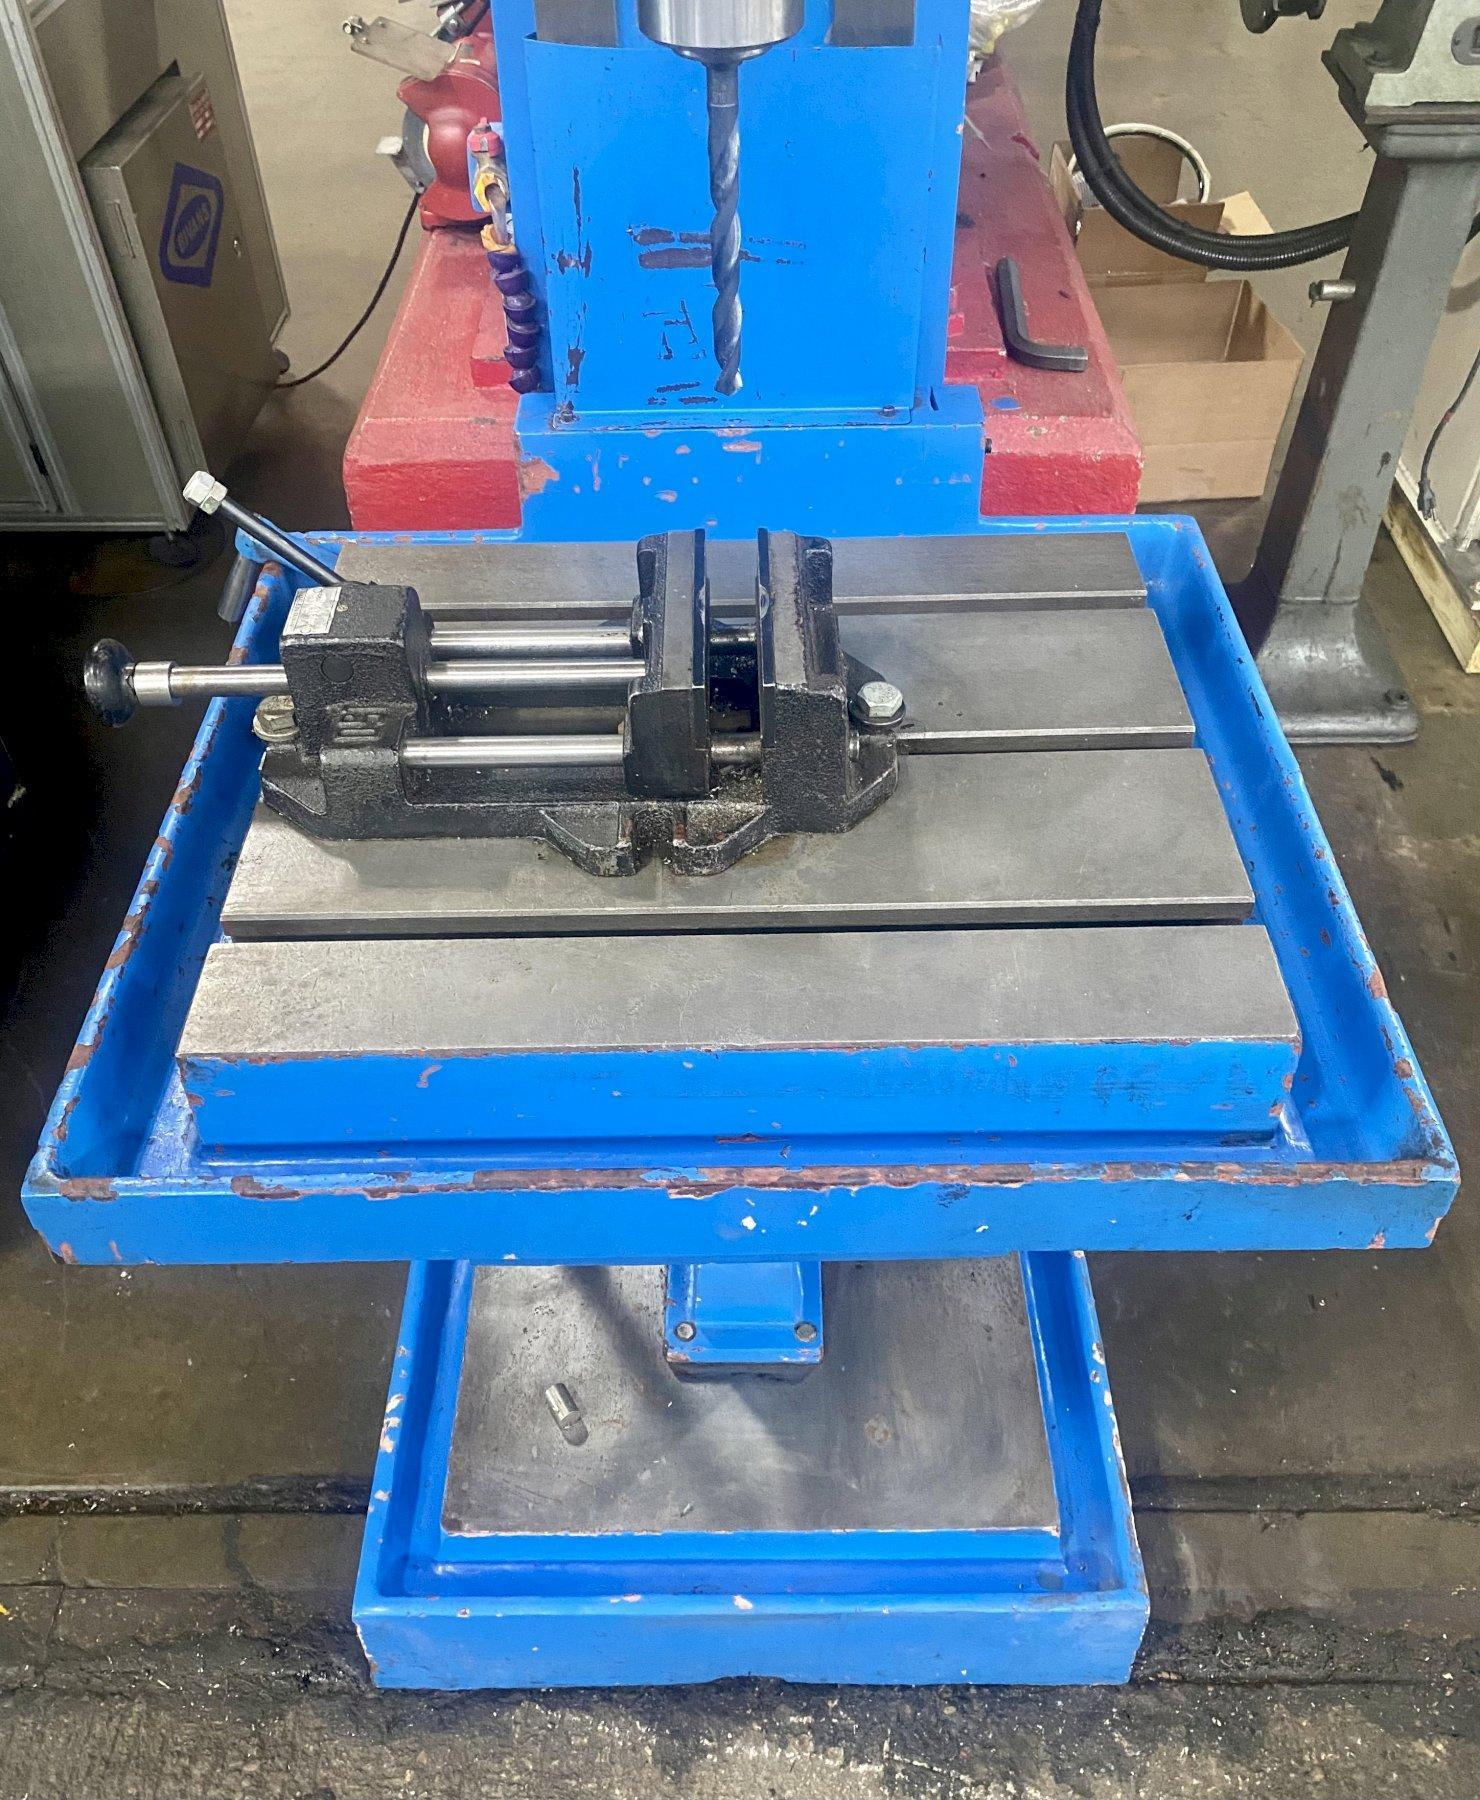 """KNUTH KSB50C COLUMN DRILL PRESS, 19"""" x 22"""" Table, 13"""" Throat, 8"""" Vertical Head Travel, 12"""" Table Stroke, 29"""" Spindle to Table Distance, New 2010."""